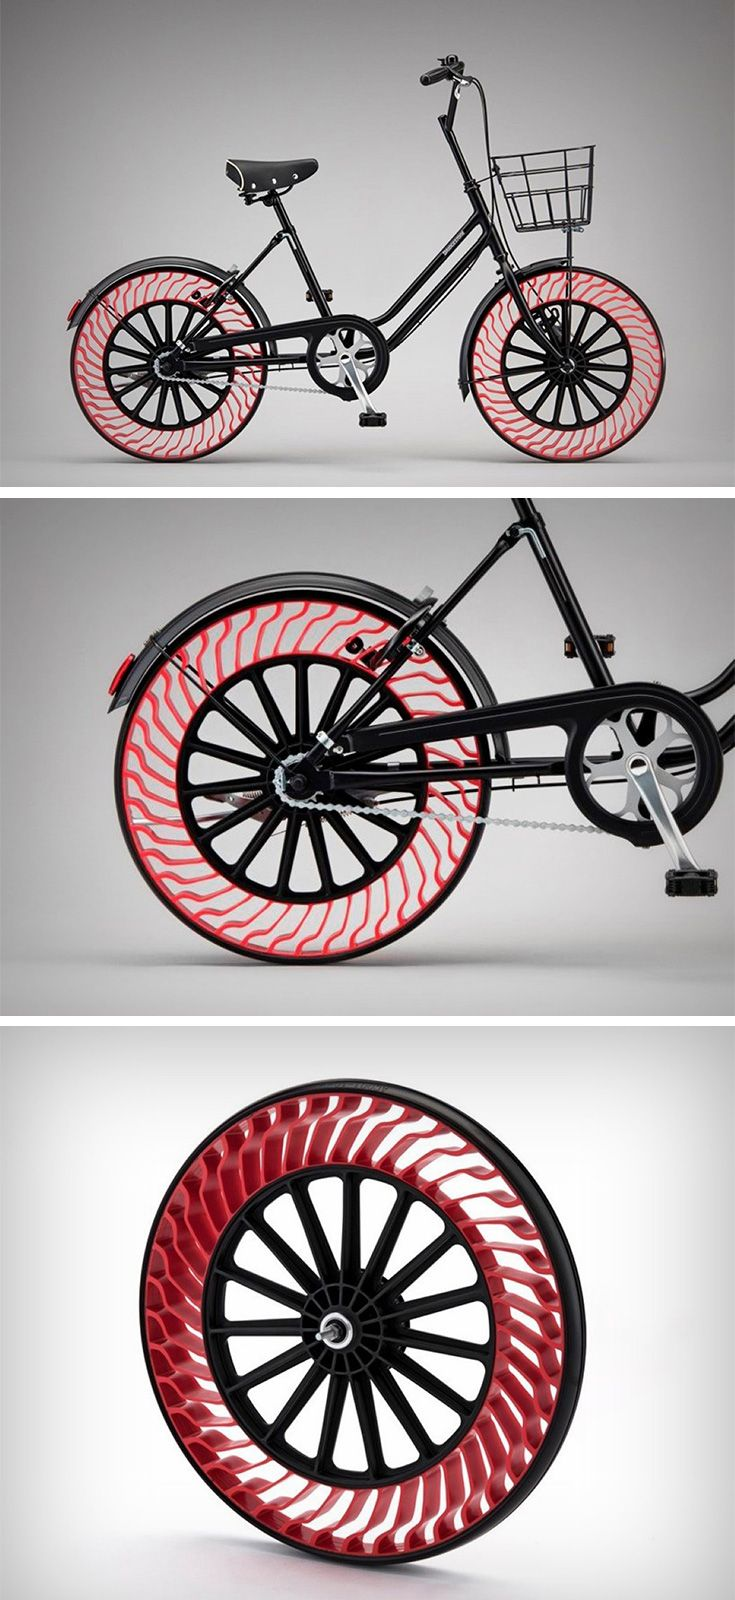 First driver-less vehicles, and now airless tires. Innovation definitely gets rid of a lot of things! Unlike most air-less tires that use a solid rubber composite tube, these tires actually do away with the tube itself, relying on a clever mix of design and physics to give you the airless tire! Bridgestone (the force behind these tires) has been experimenting with this concept since 2011, only recently demonstrating how effectively they could be used in cars.